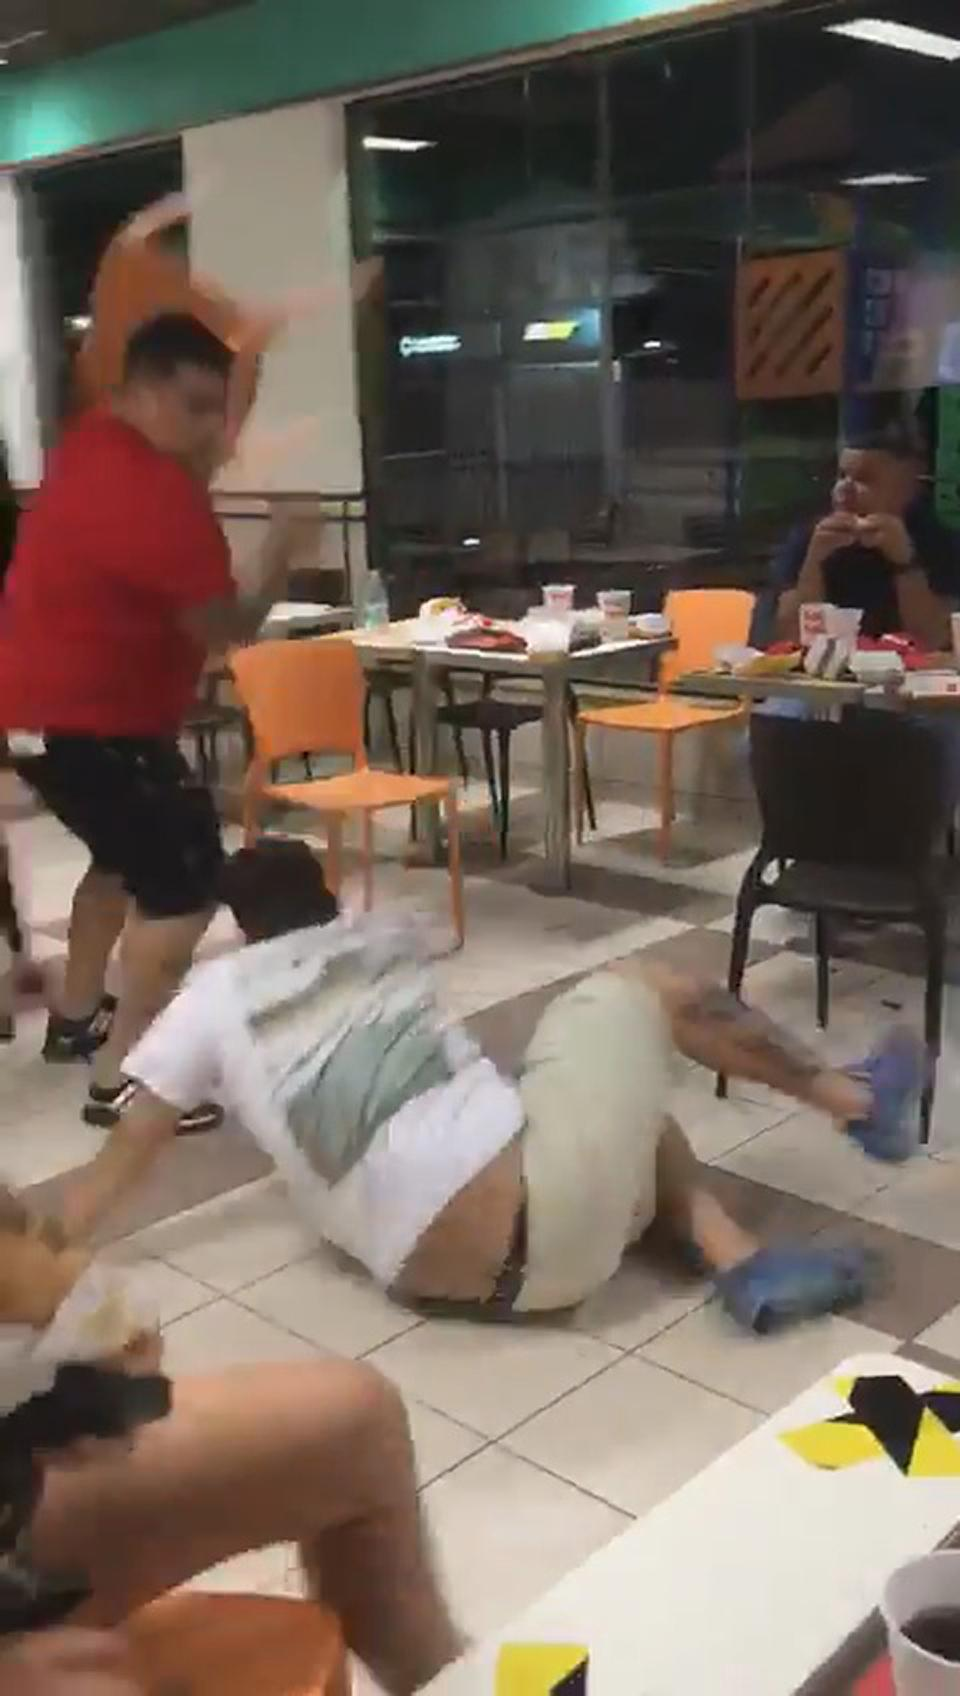 A man holds a chair up during a brawl in McDonald's.